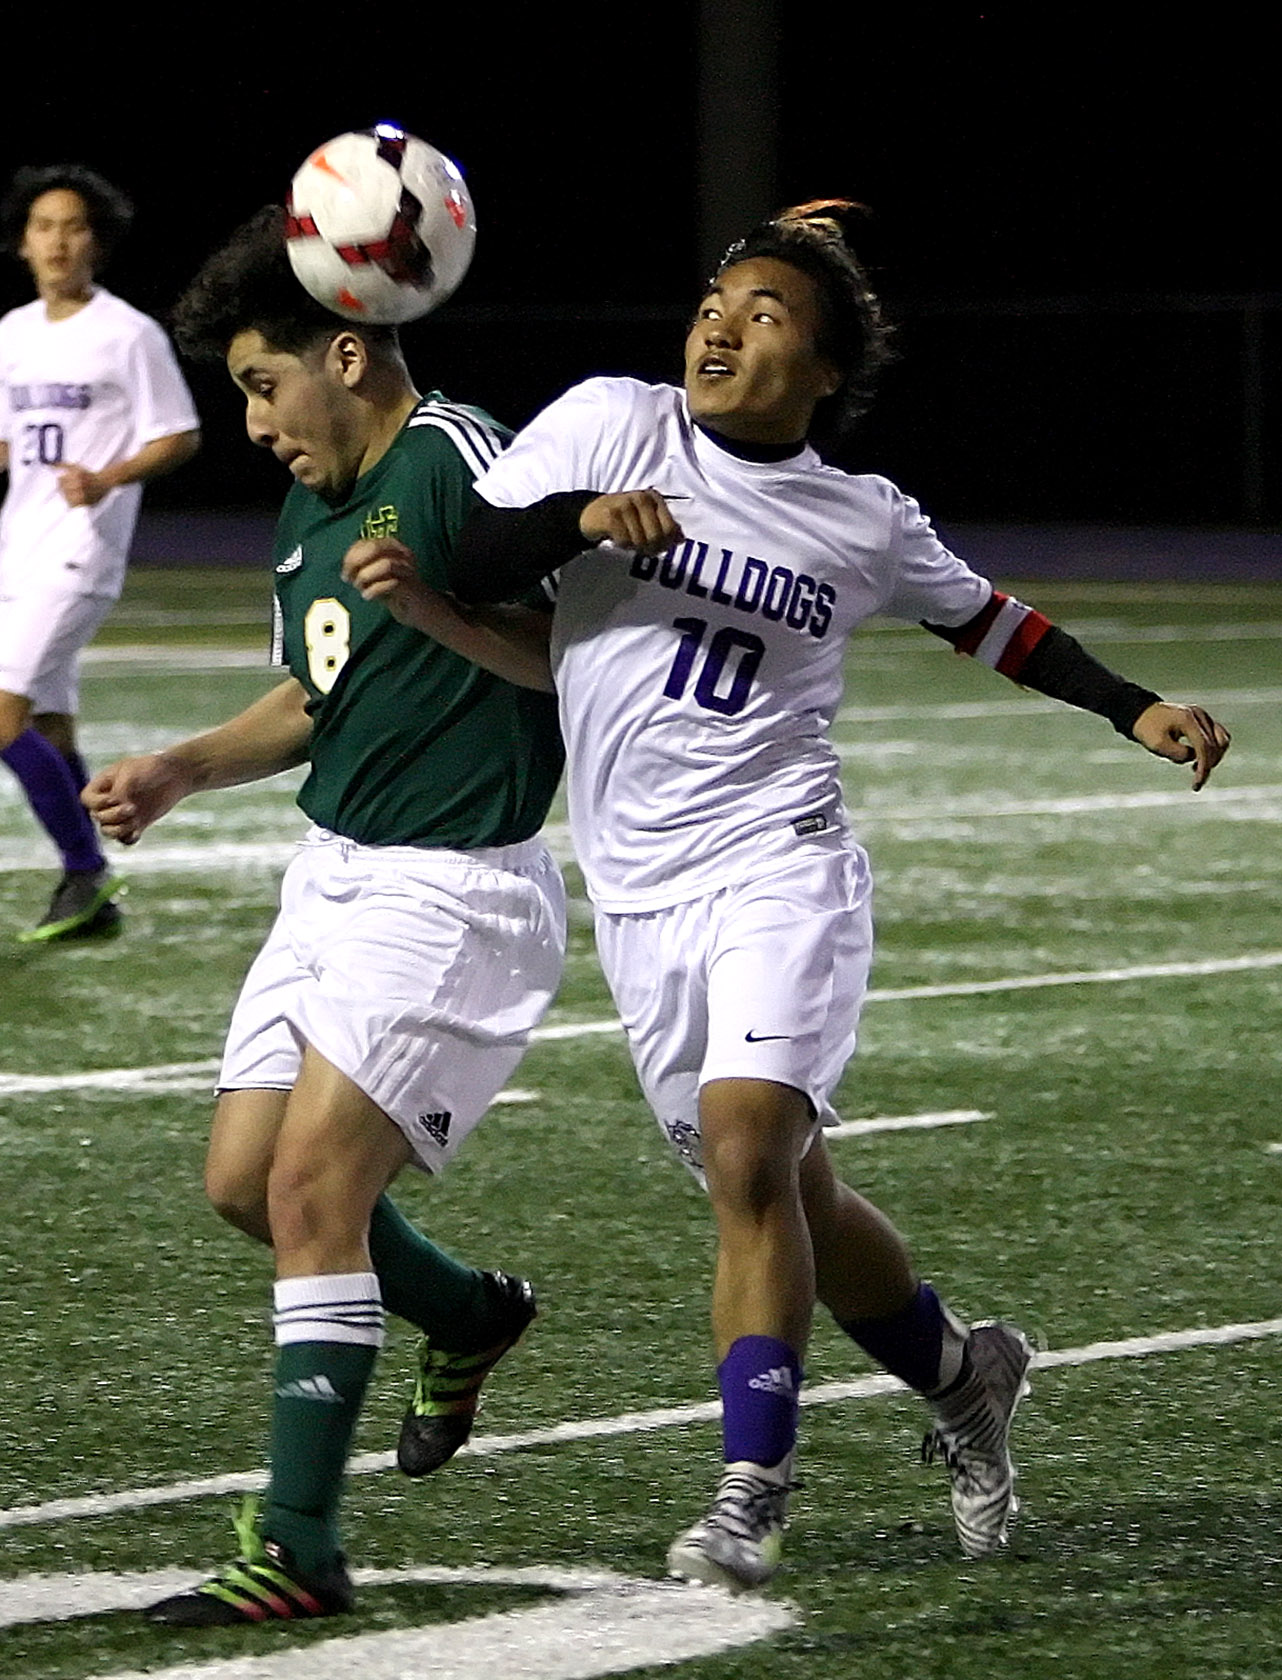 James Mung of Foster keeps his eye on the ball as he bumps into Foss 's Moses Ramos.